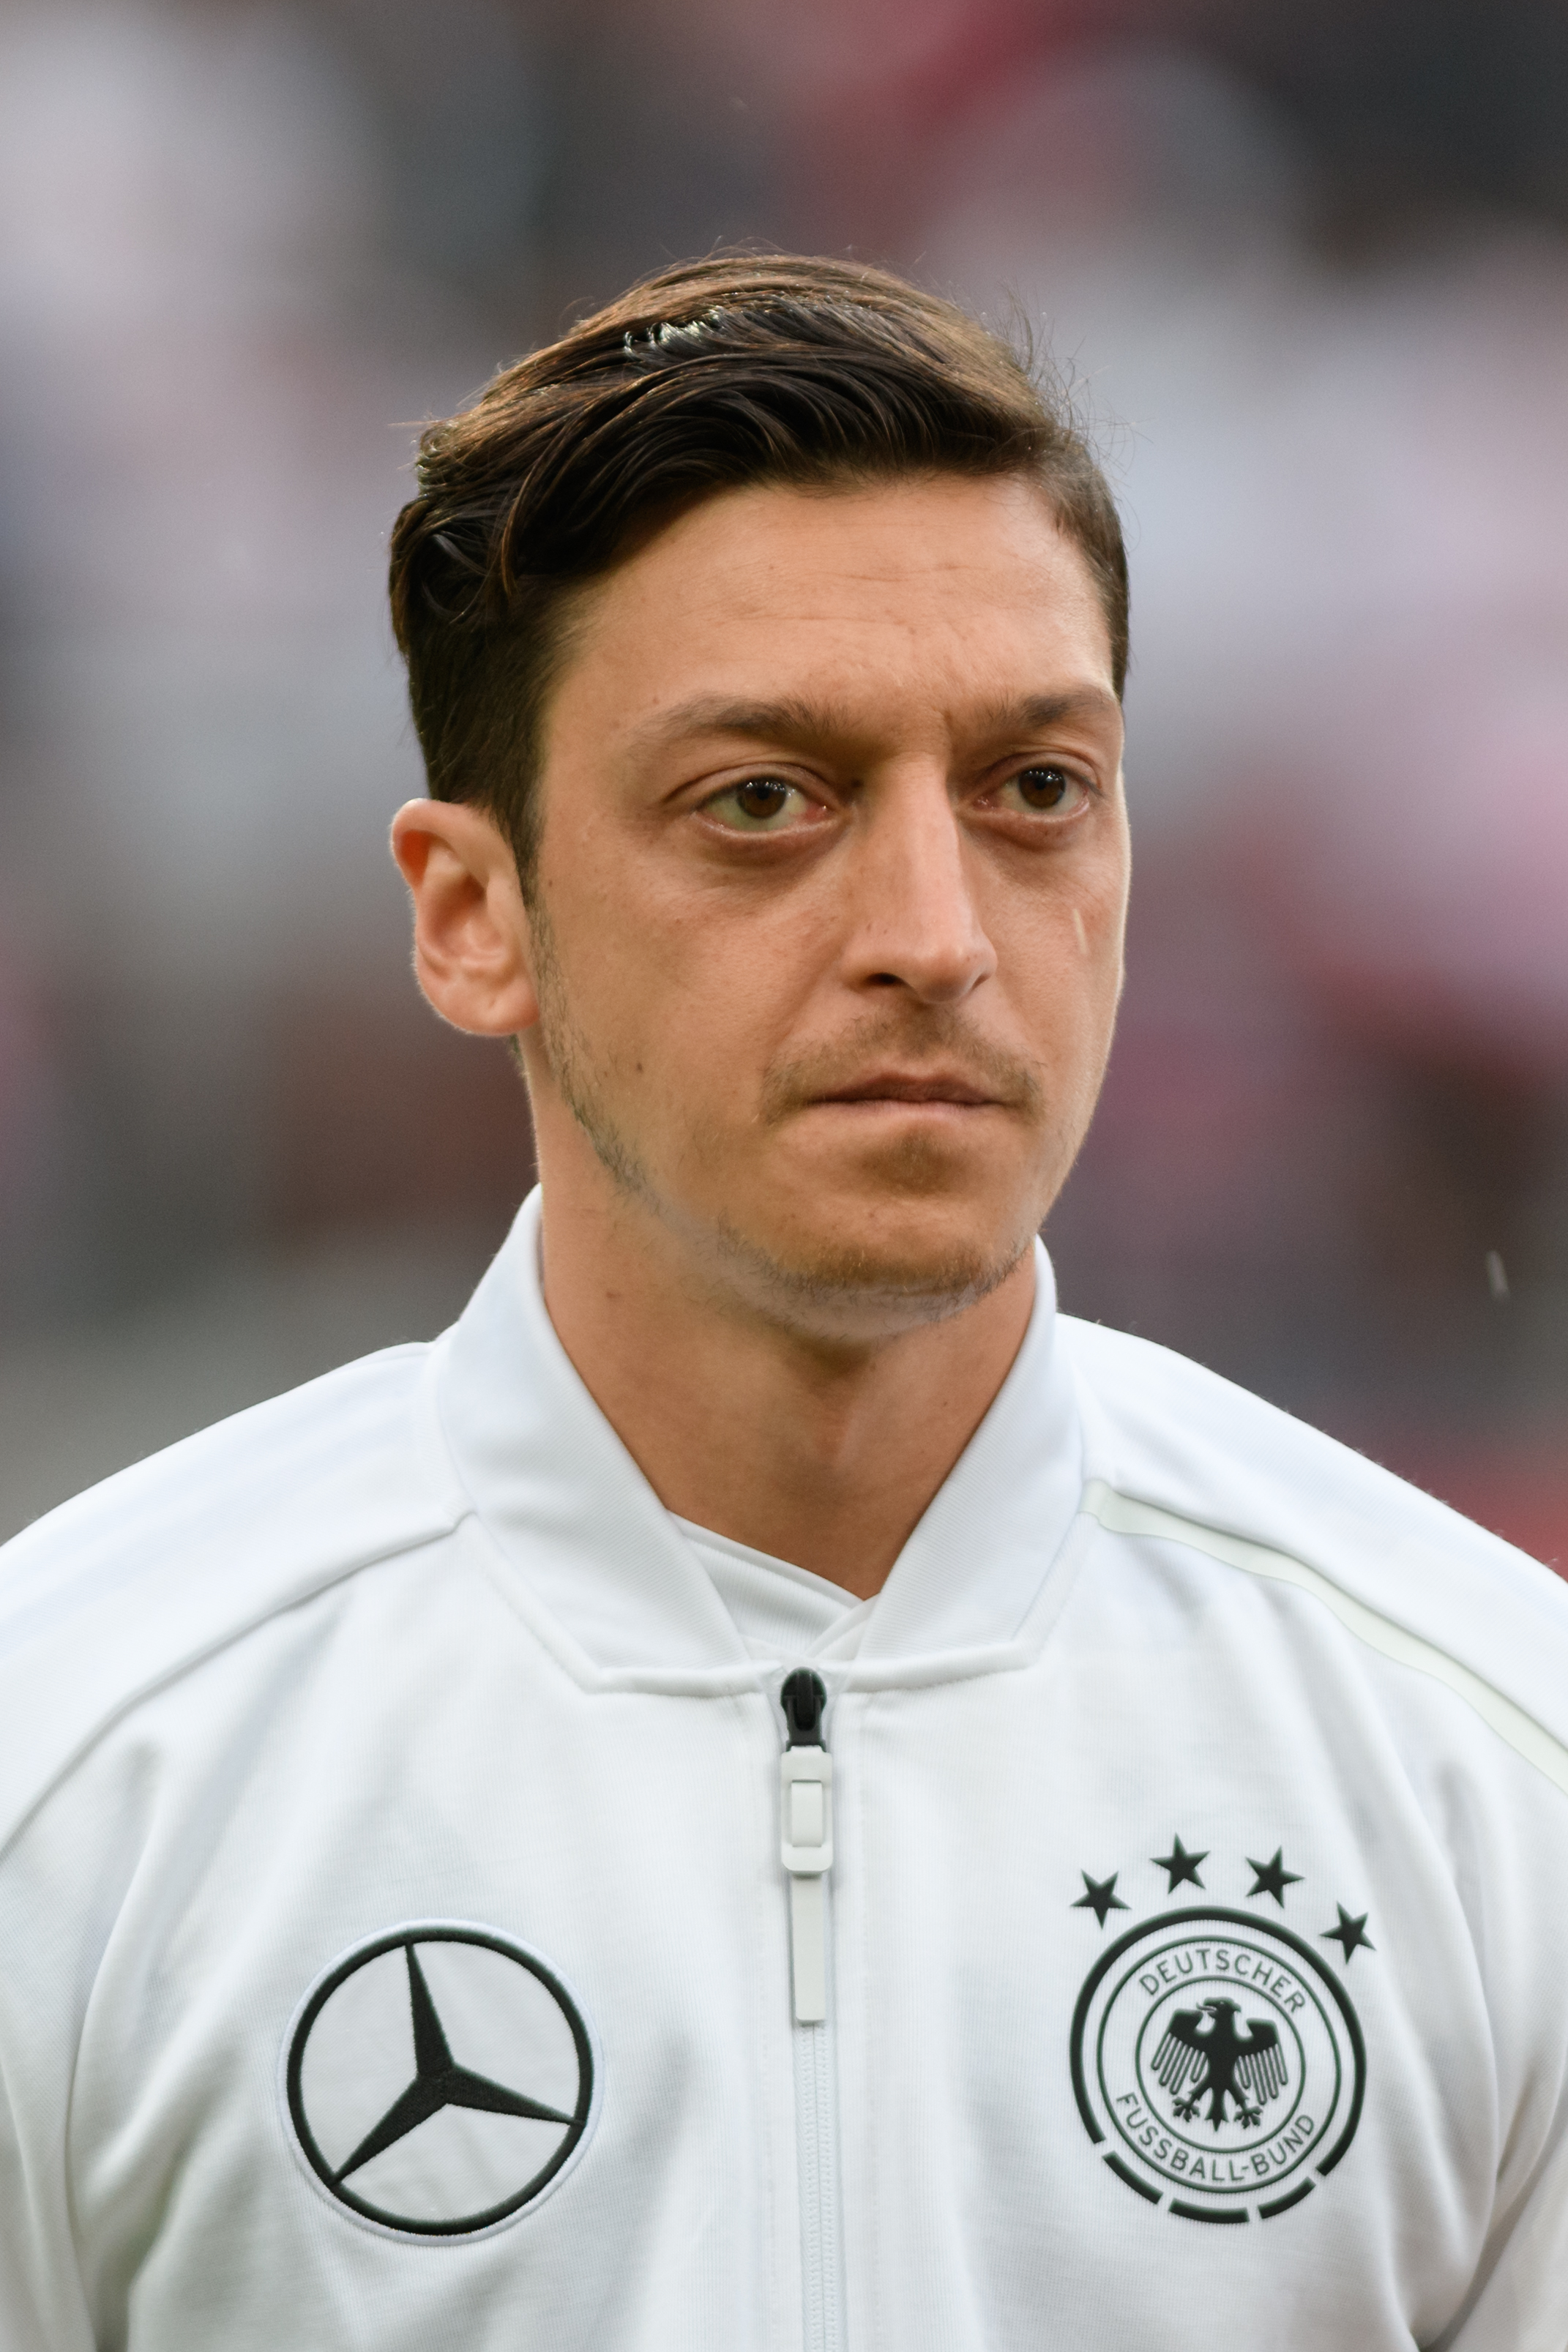 20180602_FIFA_Friendly_Match_Austria_vs._Germany_Mesut_Özil_850_0704.jpg (2142×3213)